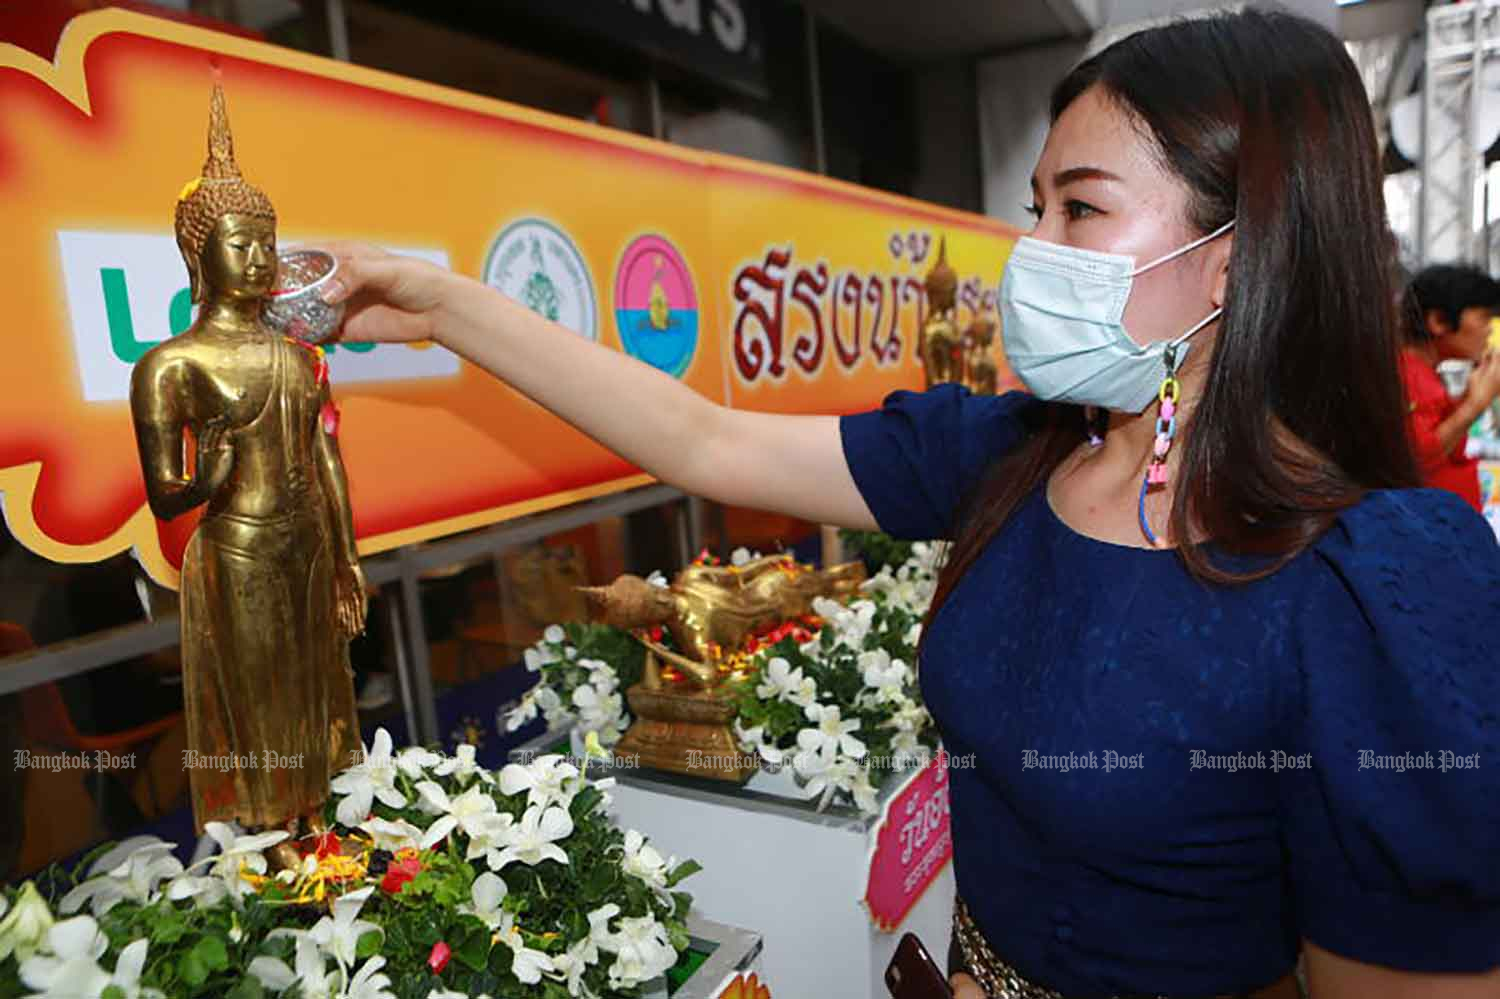 A woman bathes a Buddha image during an event to promote Songkran traditions in Bangkok late last month. (Photo: Somchai Poomlard)